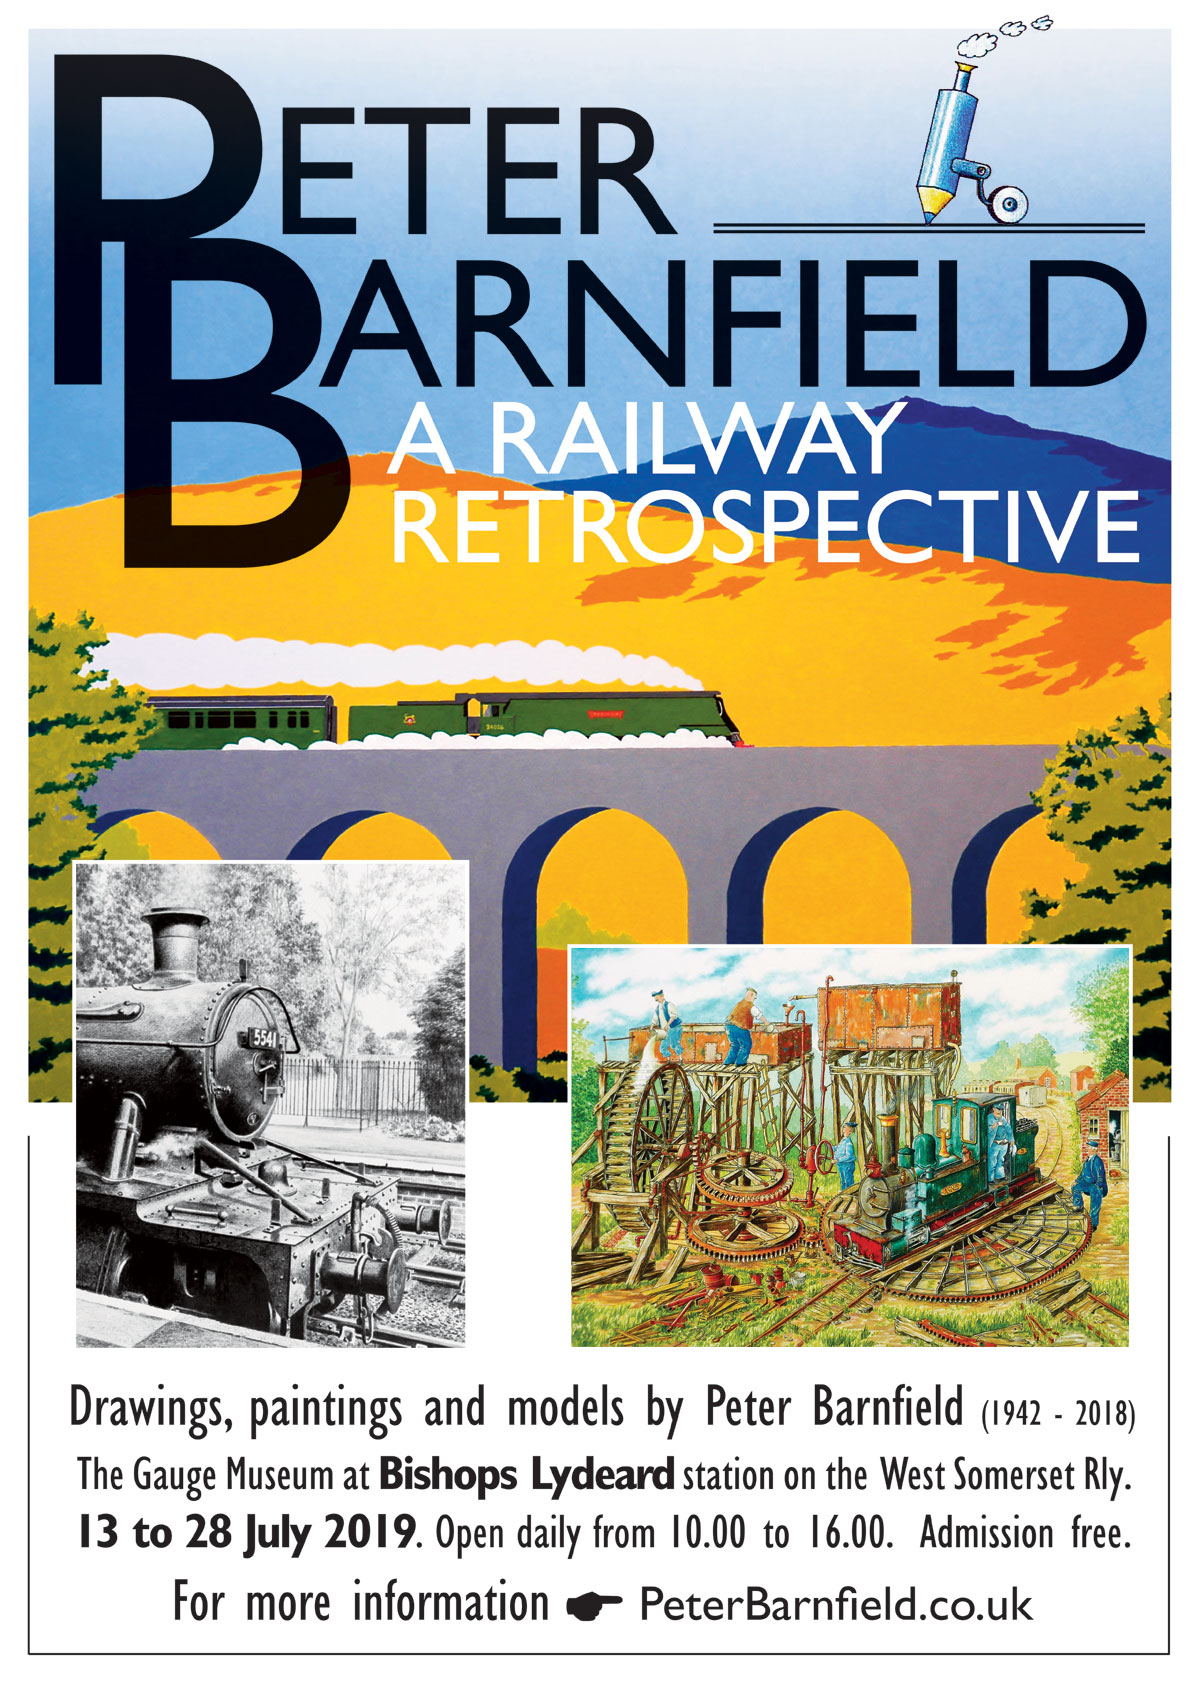 Peter Barnfield Exhibition 13th - 28th July